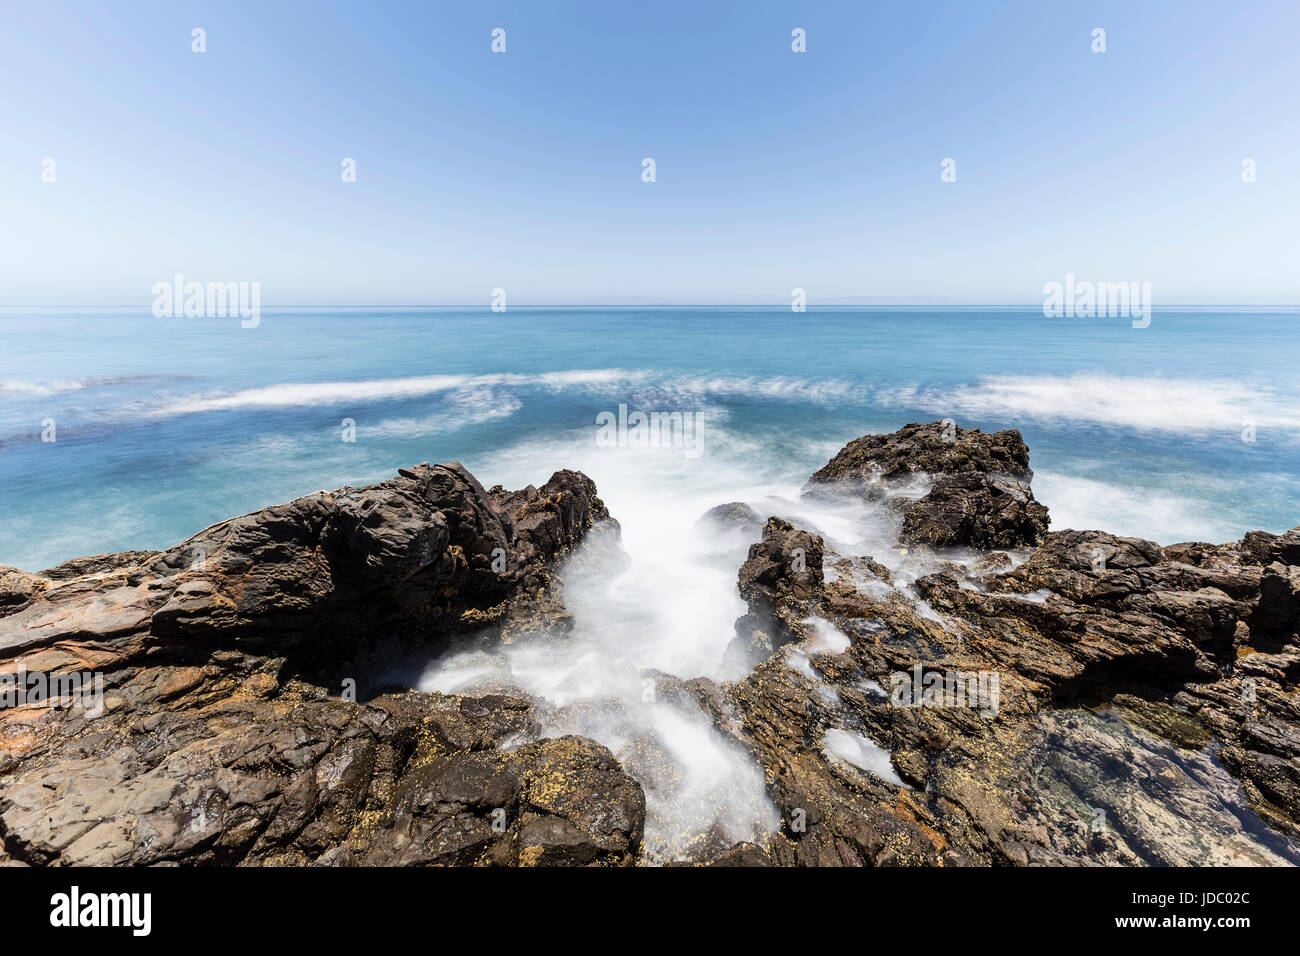 Tidal pool with motion blur water at Abalone Cove Shoreline Park in Southern California. - Stock Image